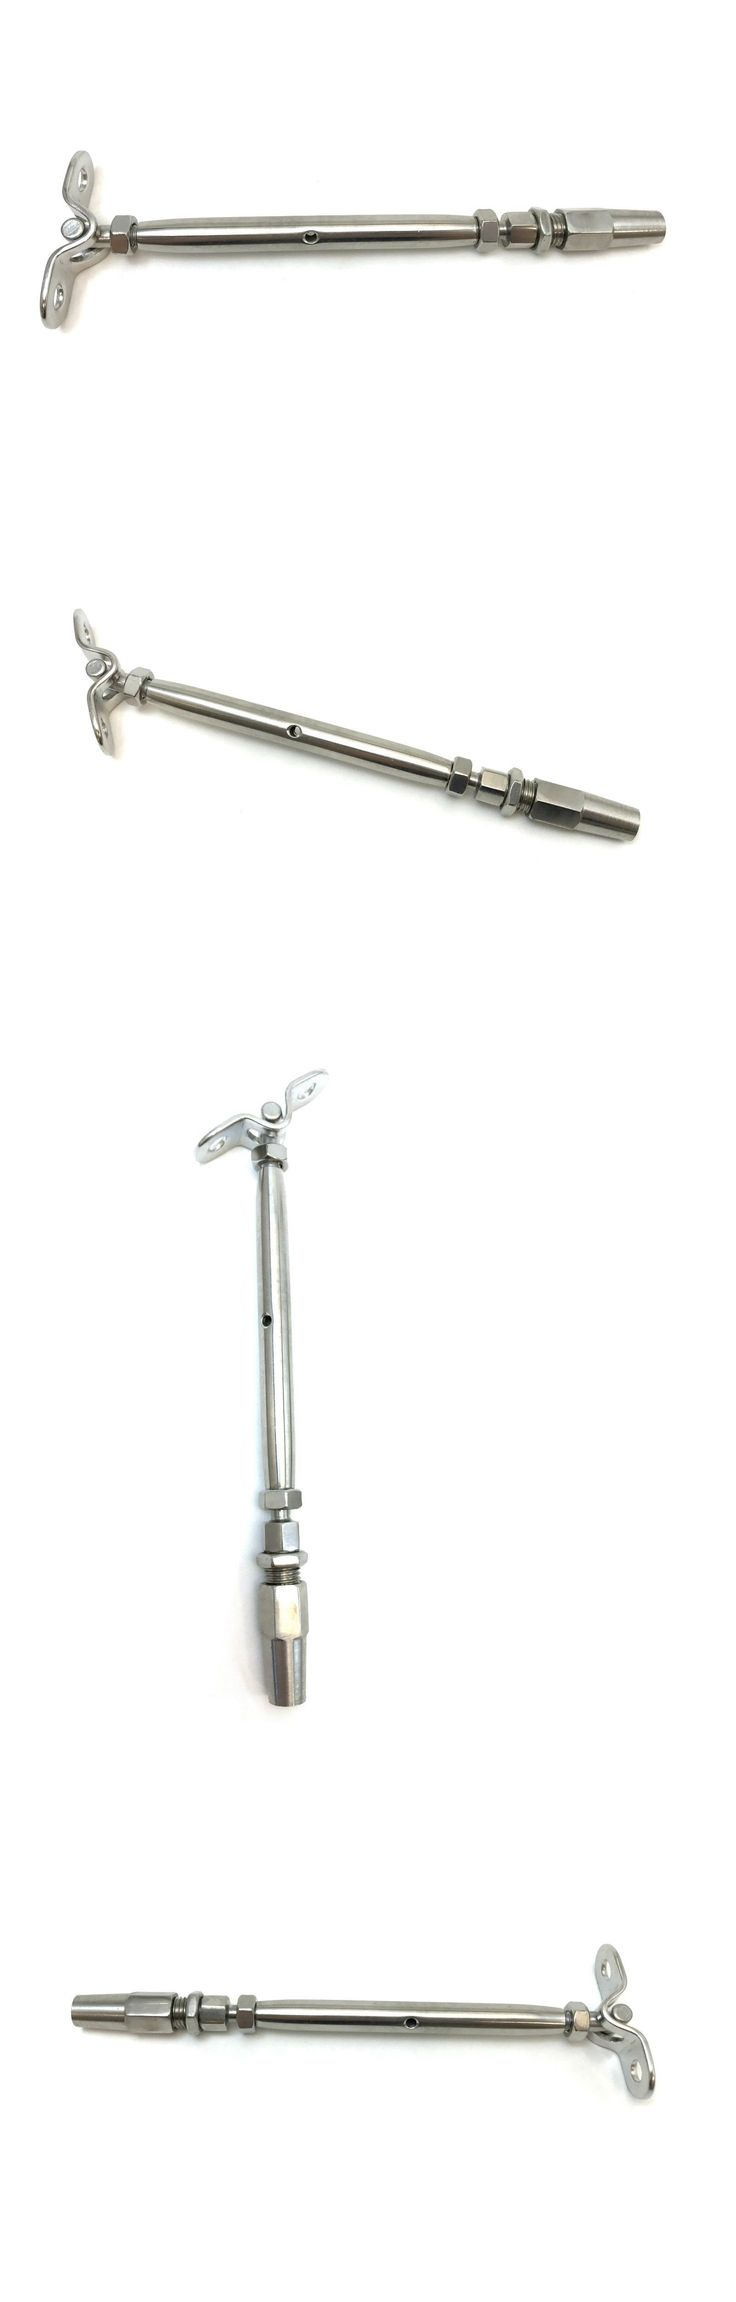 Other Home Building and Hardware 20594: Swageless Turnbuckle Deck Toggle For 1 8 Cable Marine Grade 316 Stainless Steel -> BUY IT NOW ONLY: $144.97 on eBay!